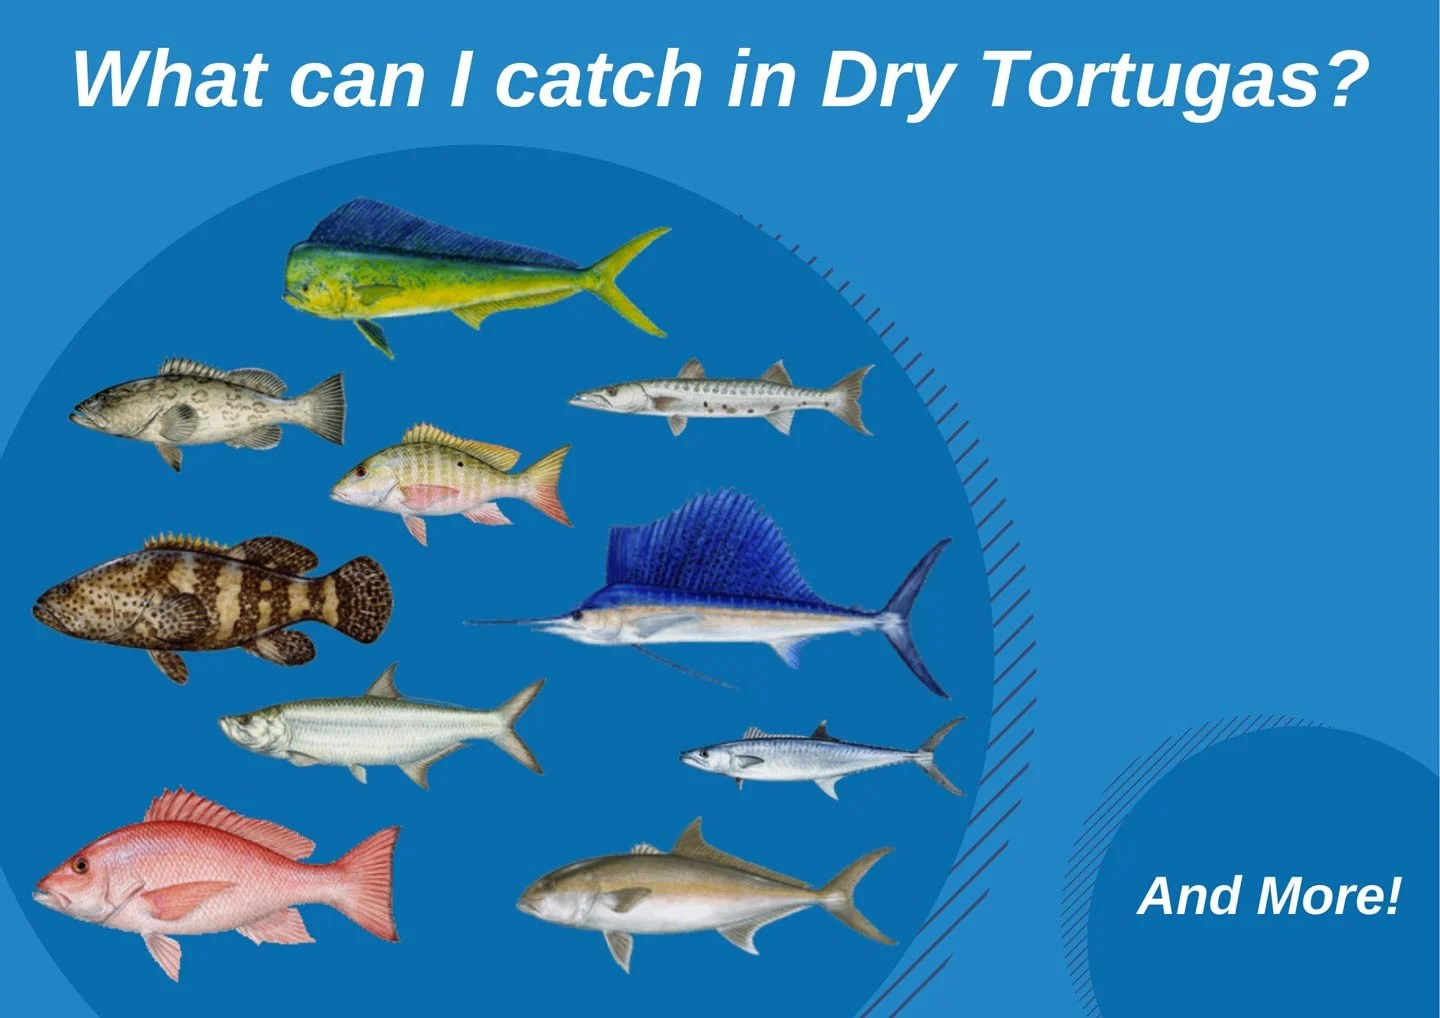 An infographic showing the top fish catches in Dry Tortugas